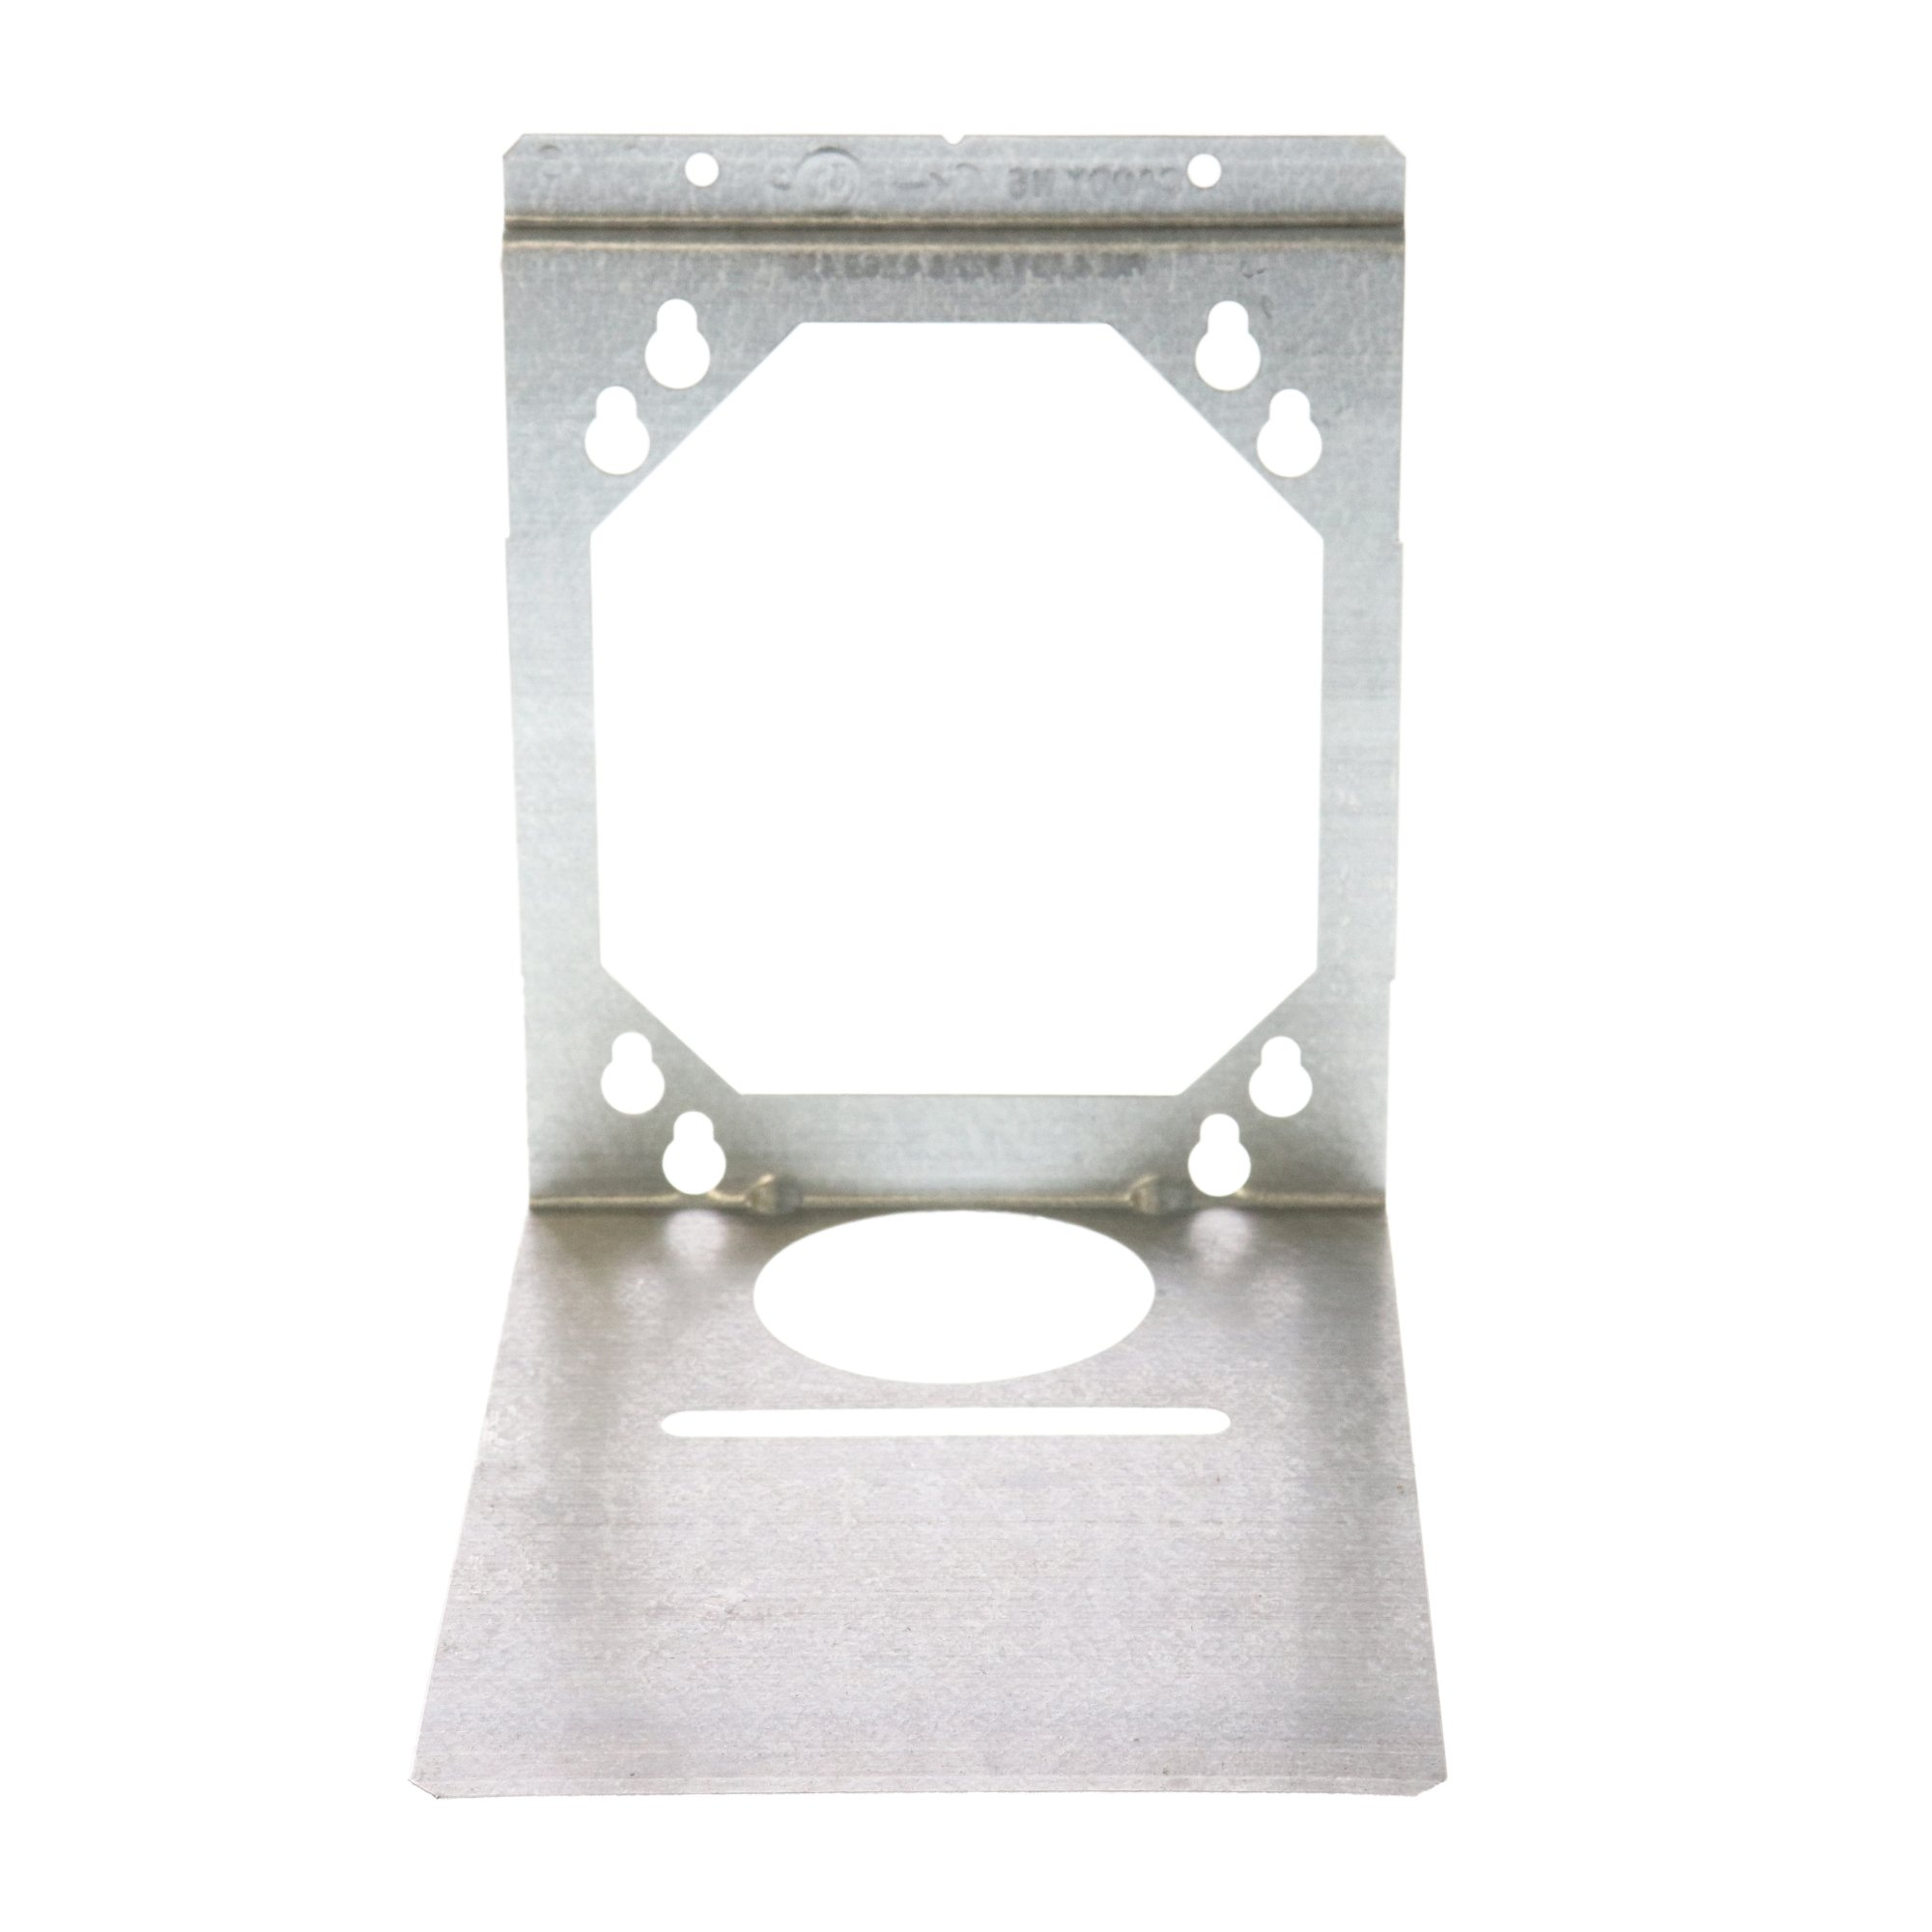 Caddy Erico H6 4-Inch Outlet Box Support for 6-Inch Metal Studs (50 Pack) by Erico Caddy Cadwal (Image #1)